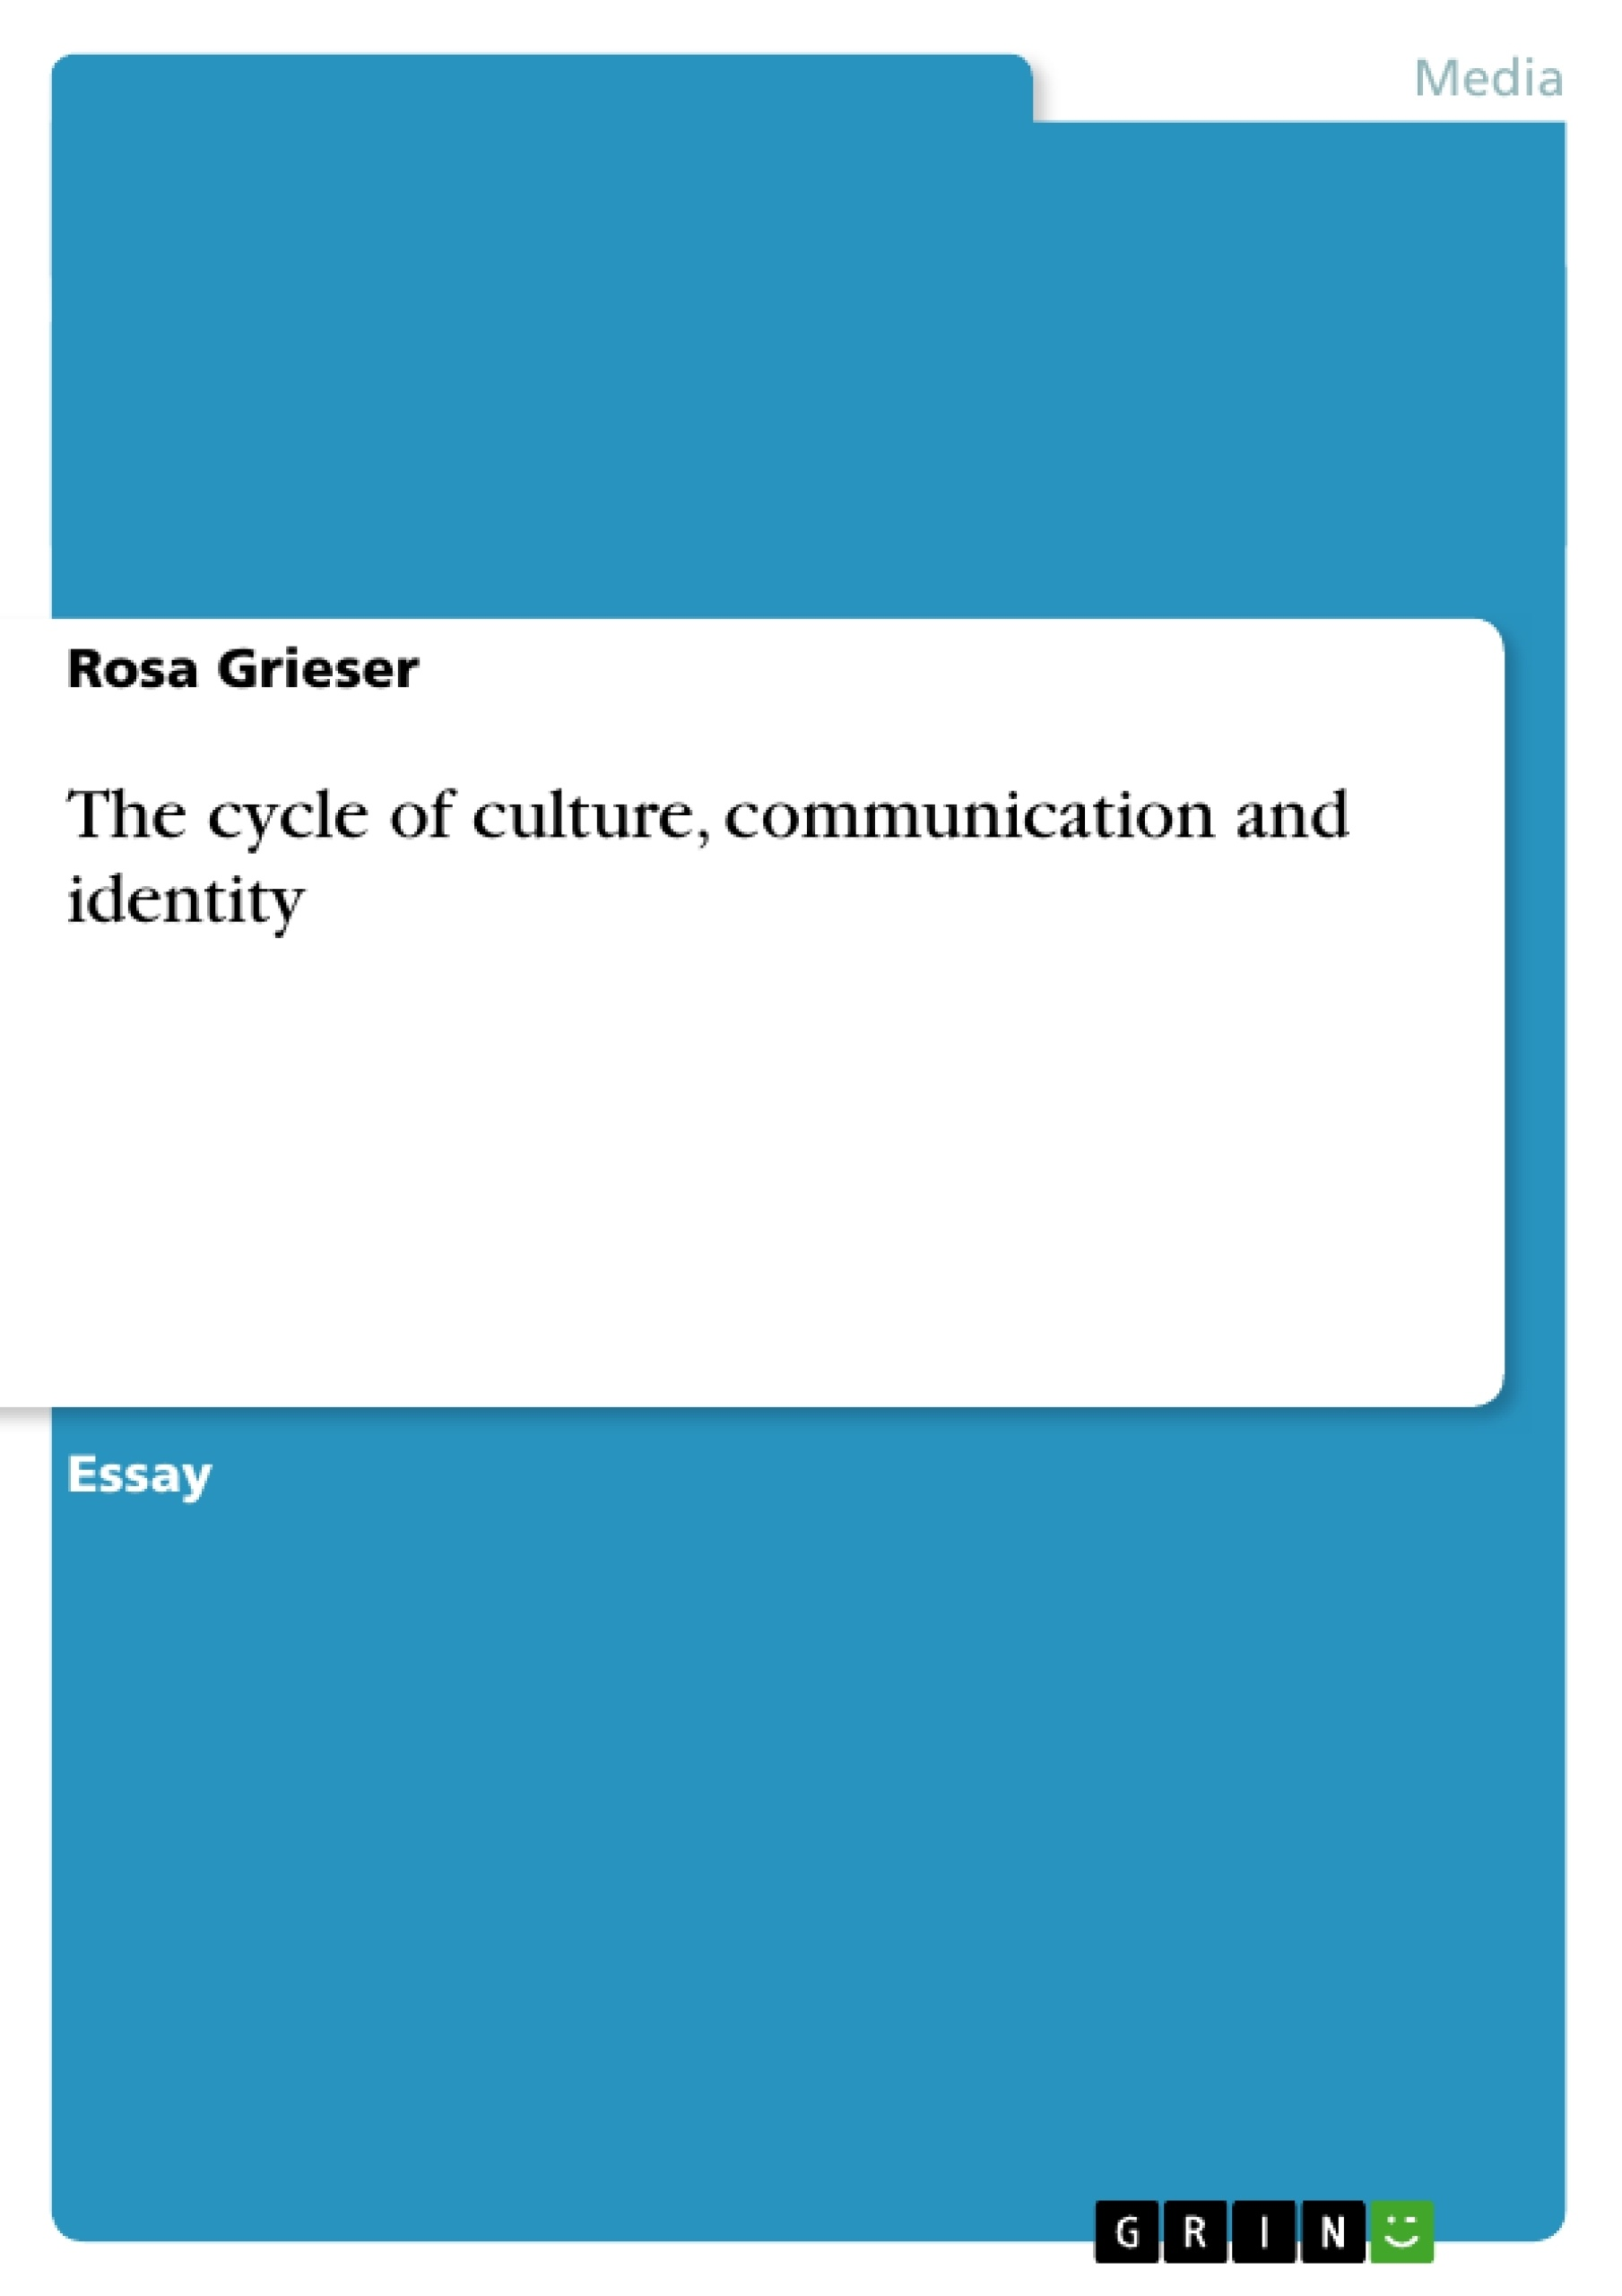 Title: The cycle of culture, communication and identity